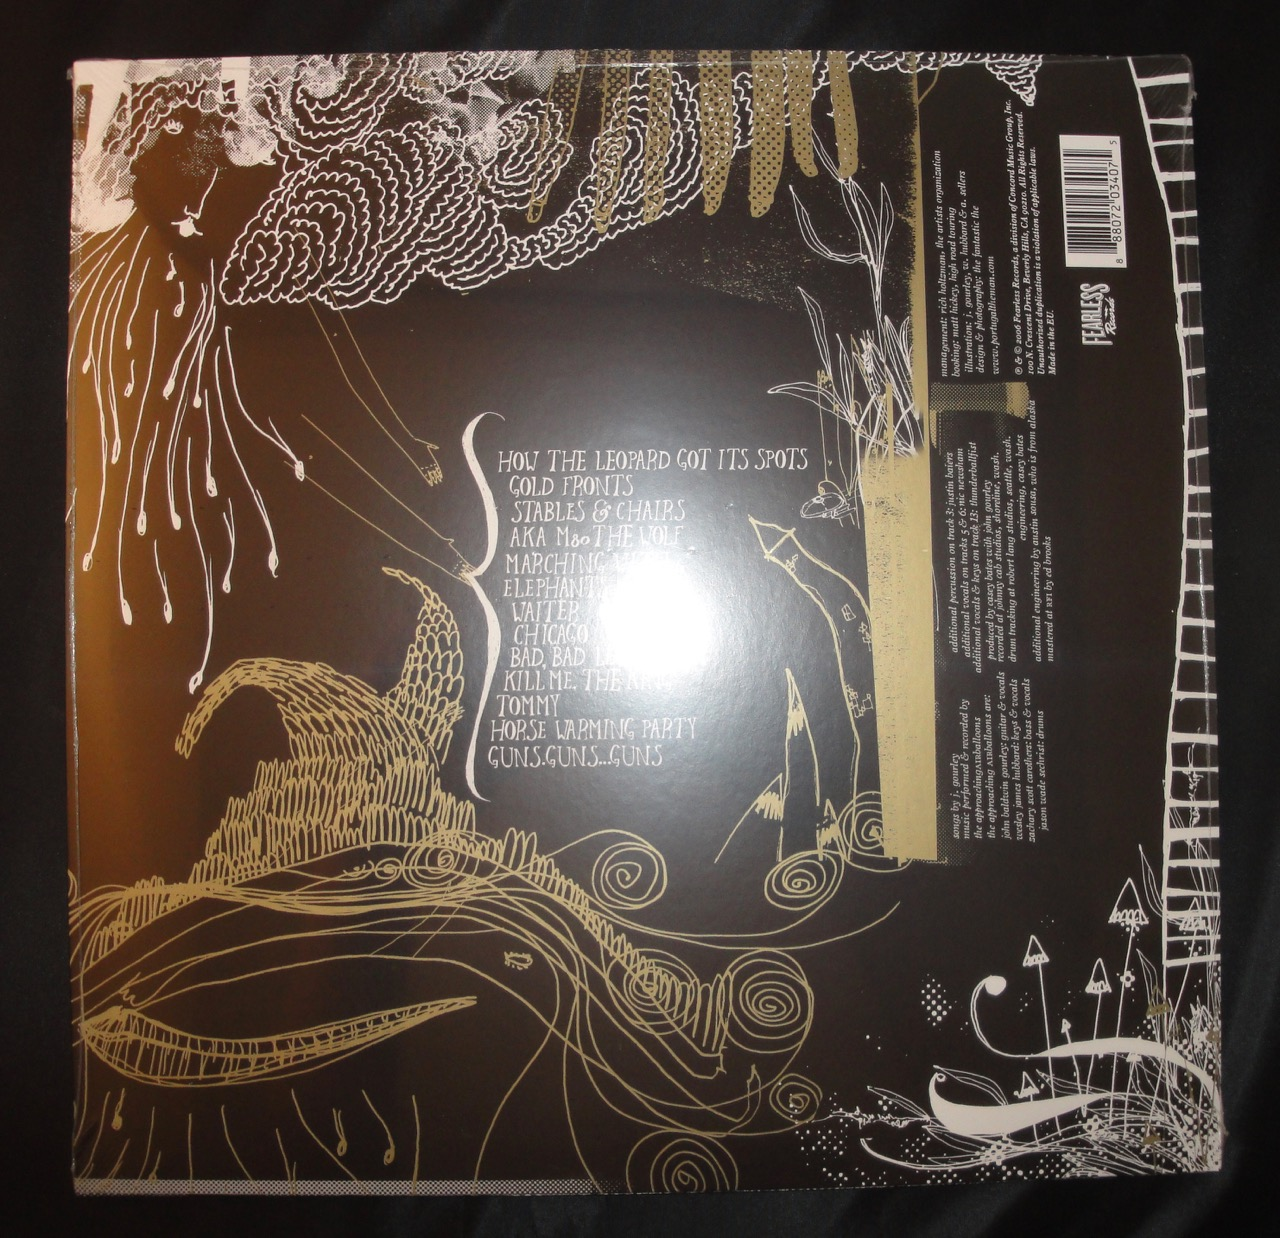 Portugal. The Man - Waiter: 'You Vultures!' - Vinyl, LP, Reissue, Fearless Records, 2017